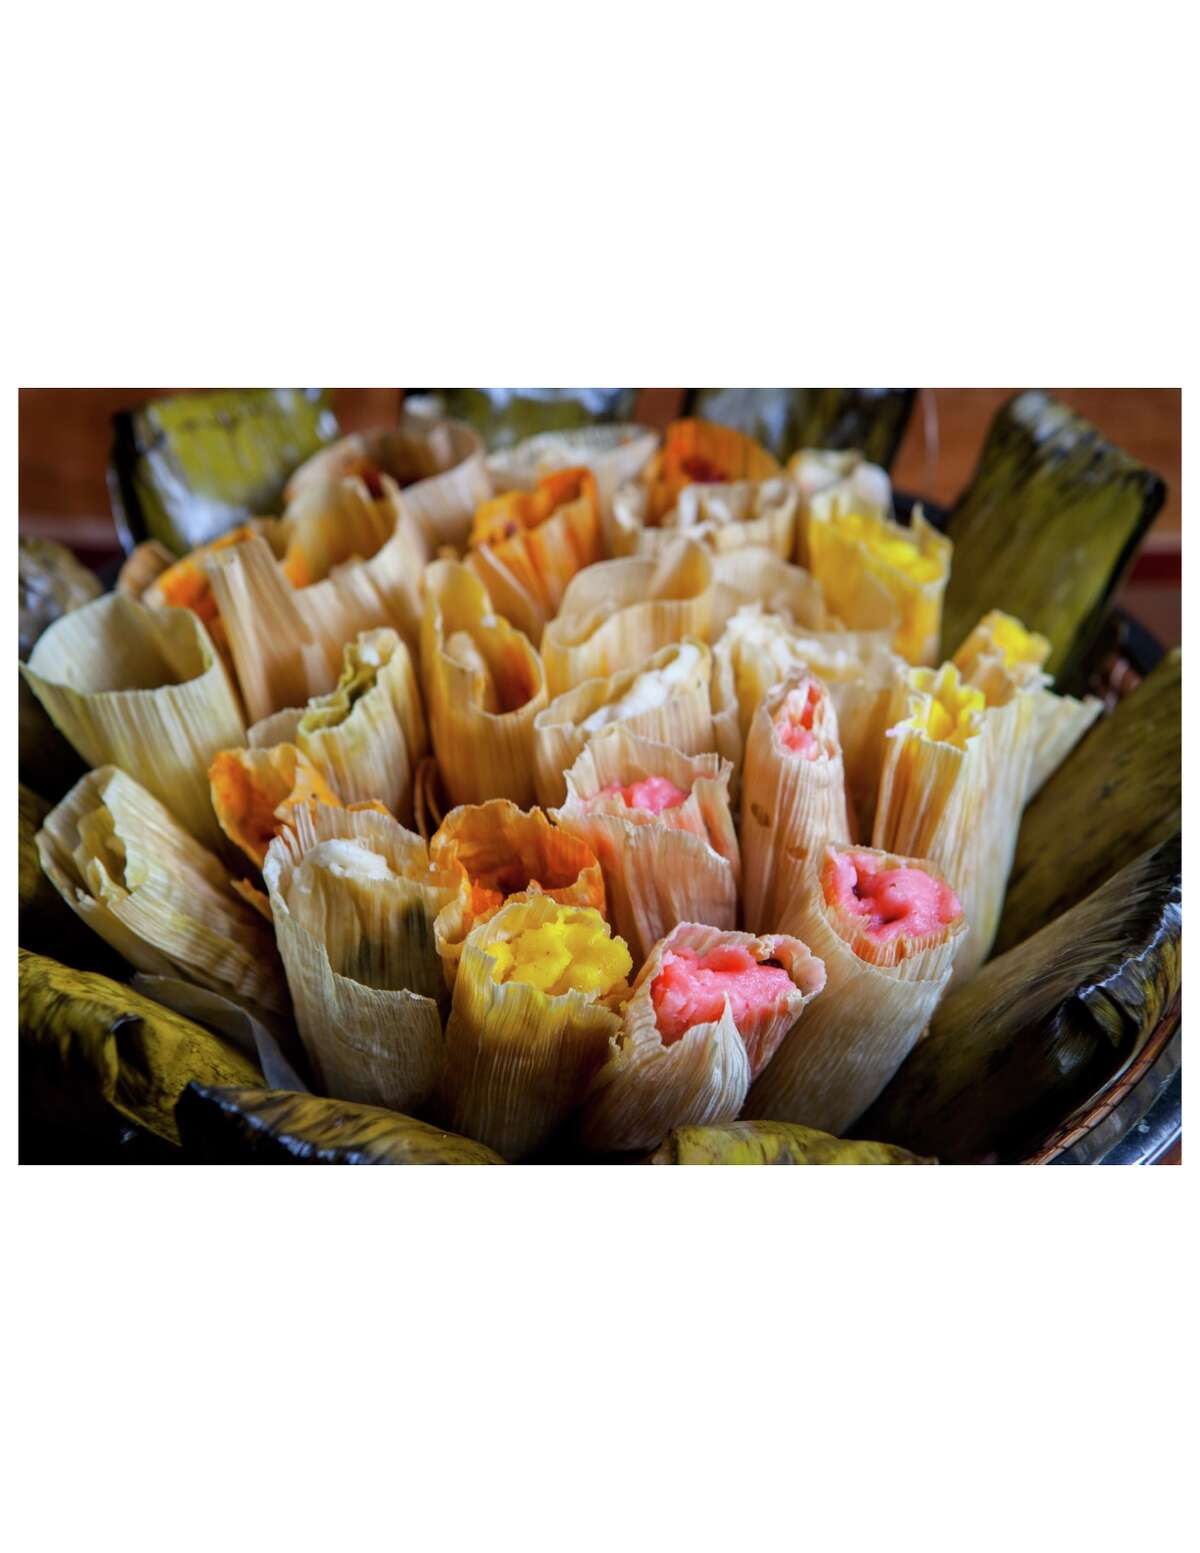 Arnaldo Richards' Picos restaurant will offer tamales from its tamale stand daily from 11 a.m. to 7 p.m. from Nov. 10 to Jan. 6 (except for Thanksgiving Day and Christmas Day).